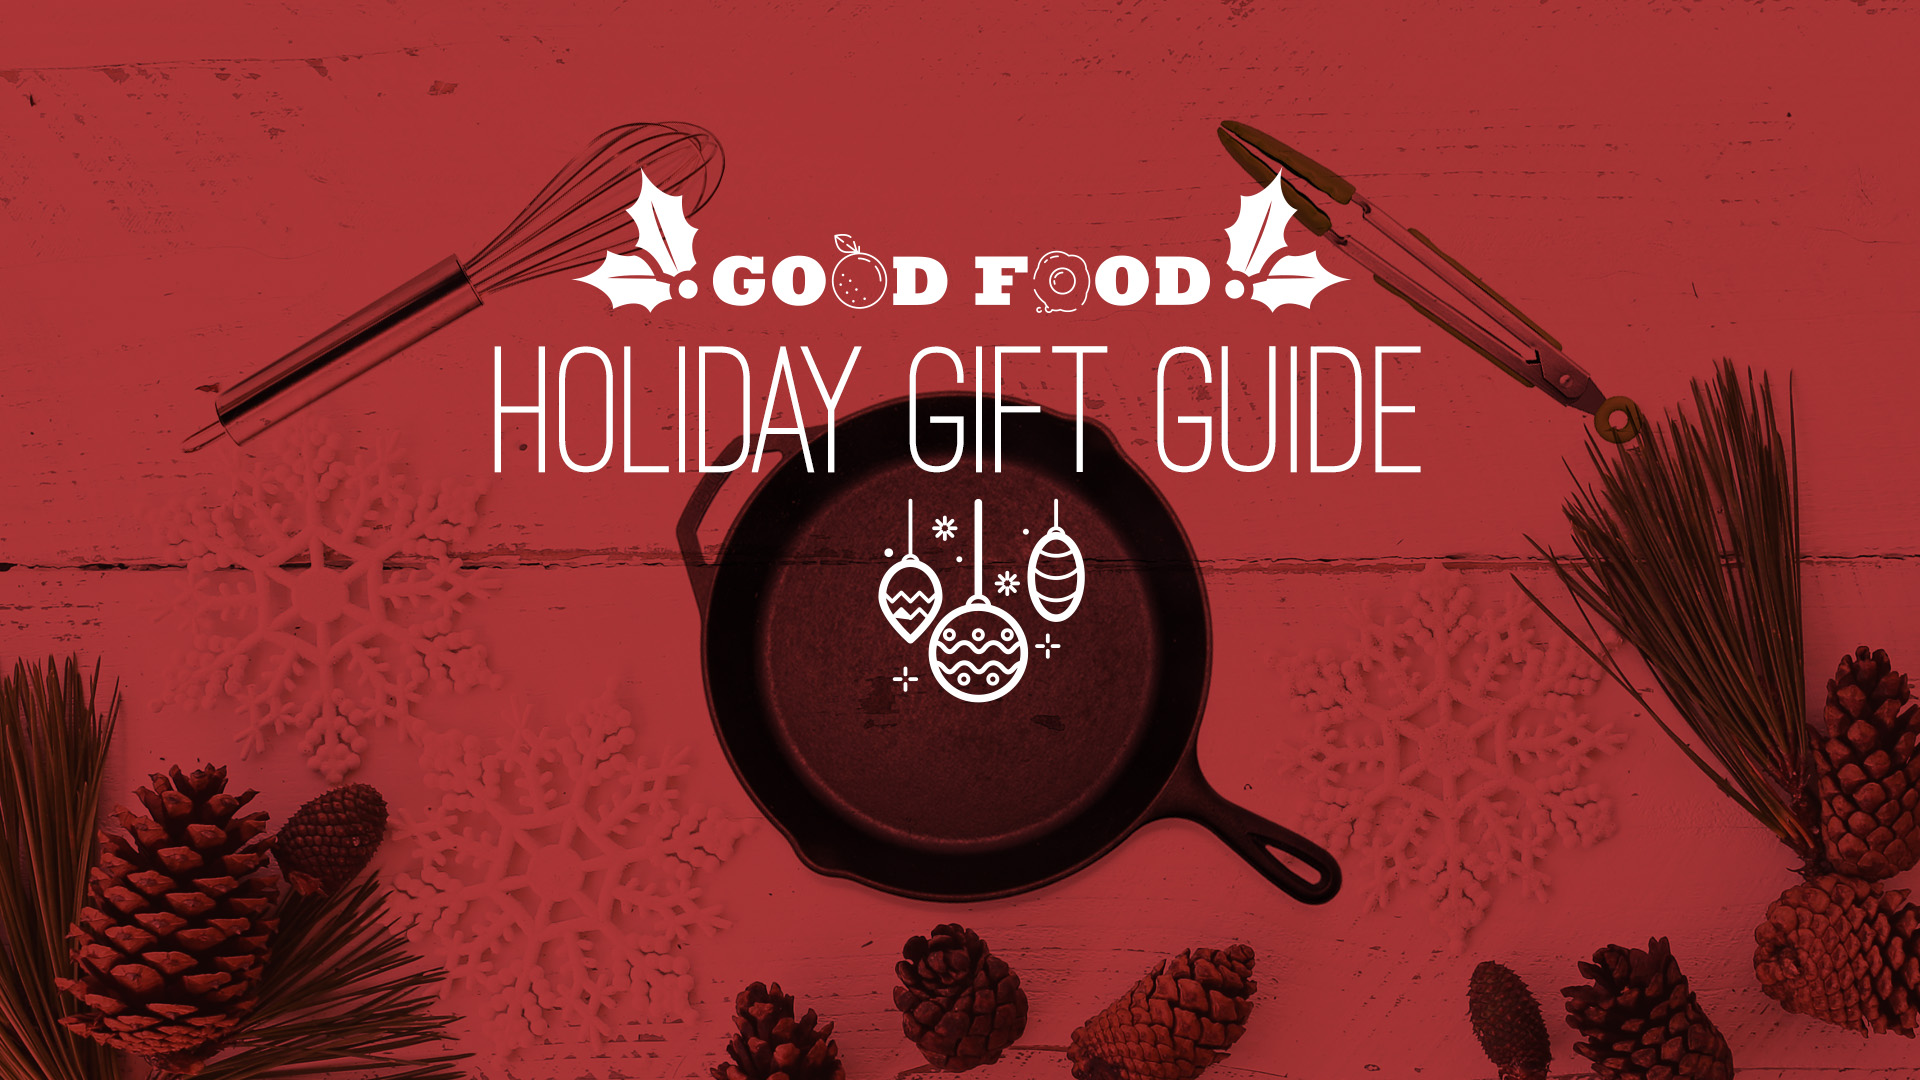 Good food 39 s holiday gift guide kcrw good food for Cuisine good food guide 2017